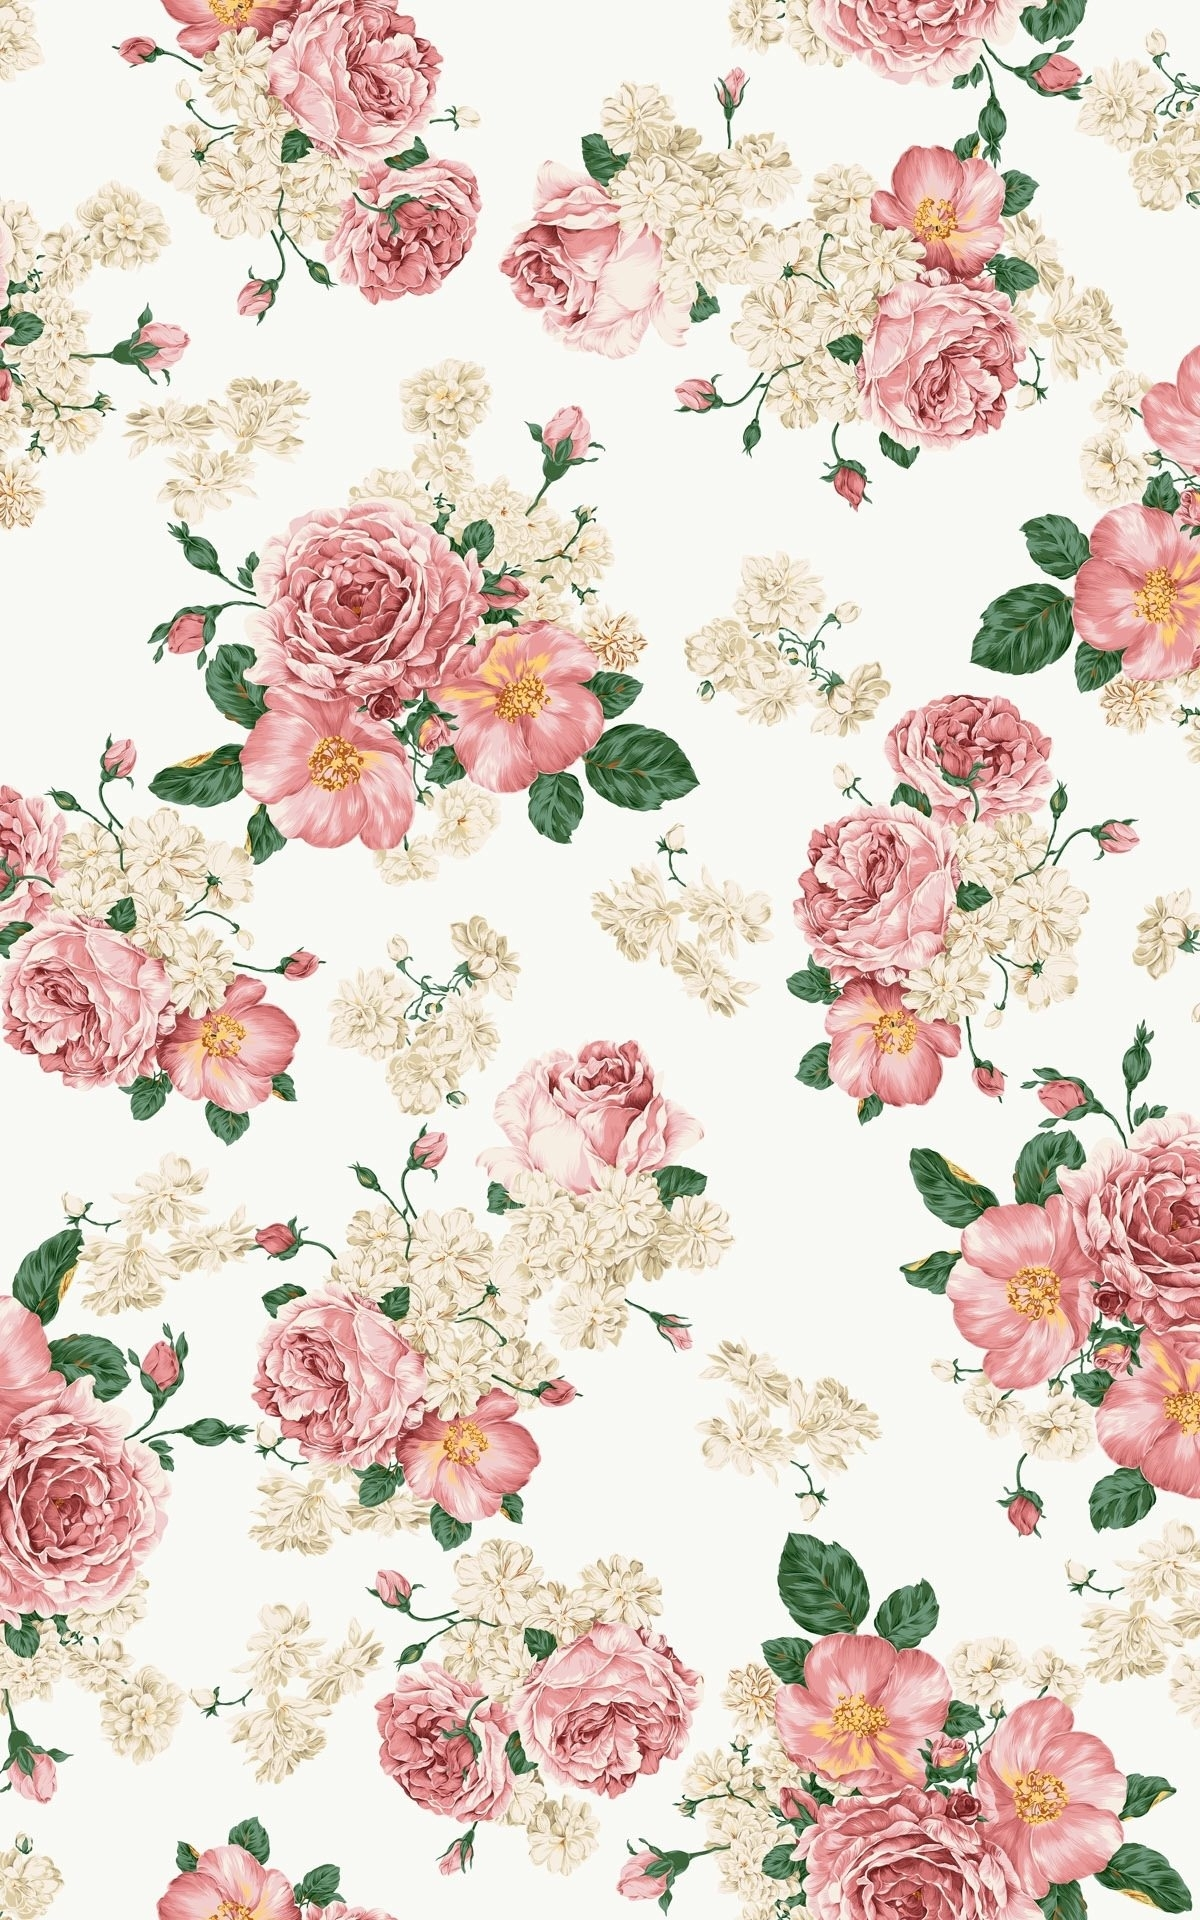 10 Top Pink Vintage Flowers Wallpaper FULL HD 1920×1080 For PC Background